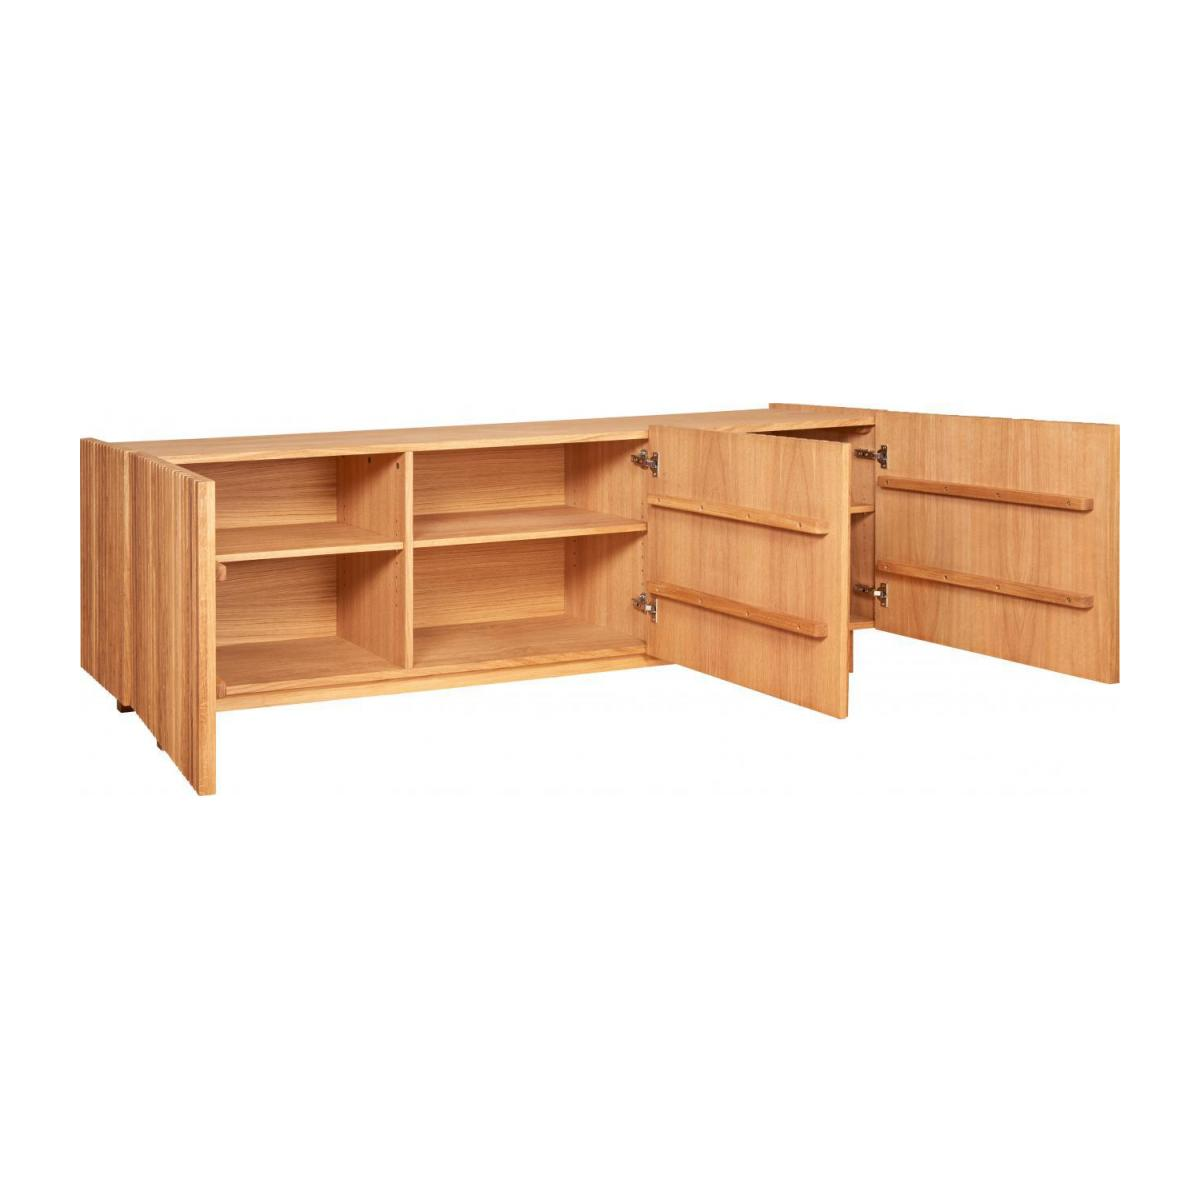 3 doors oak buffet n°3